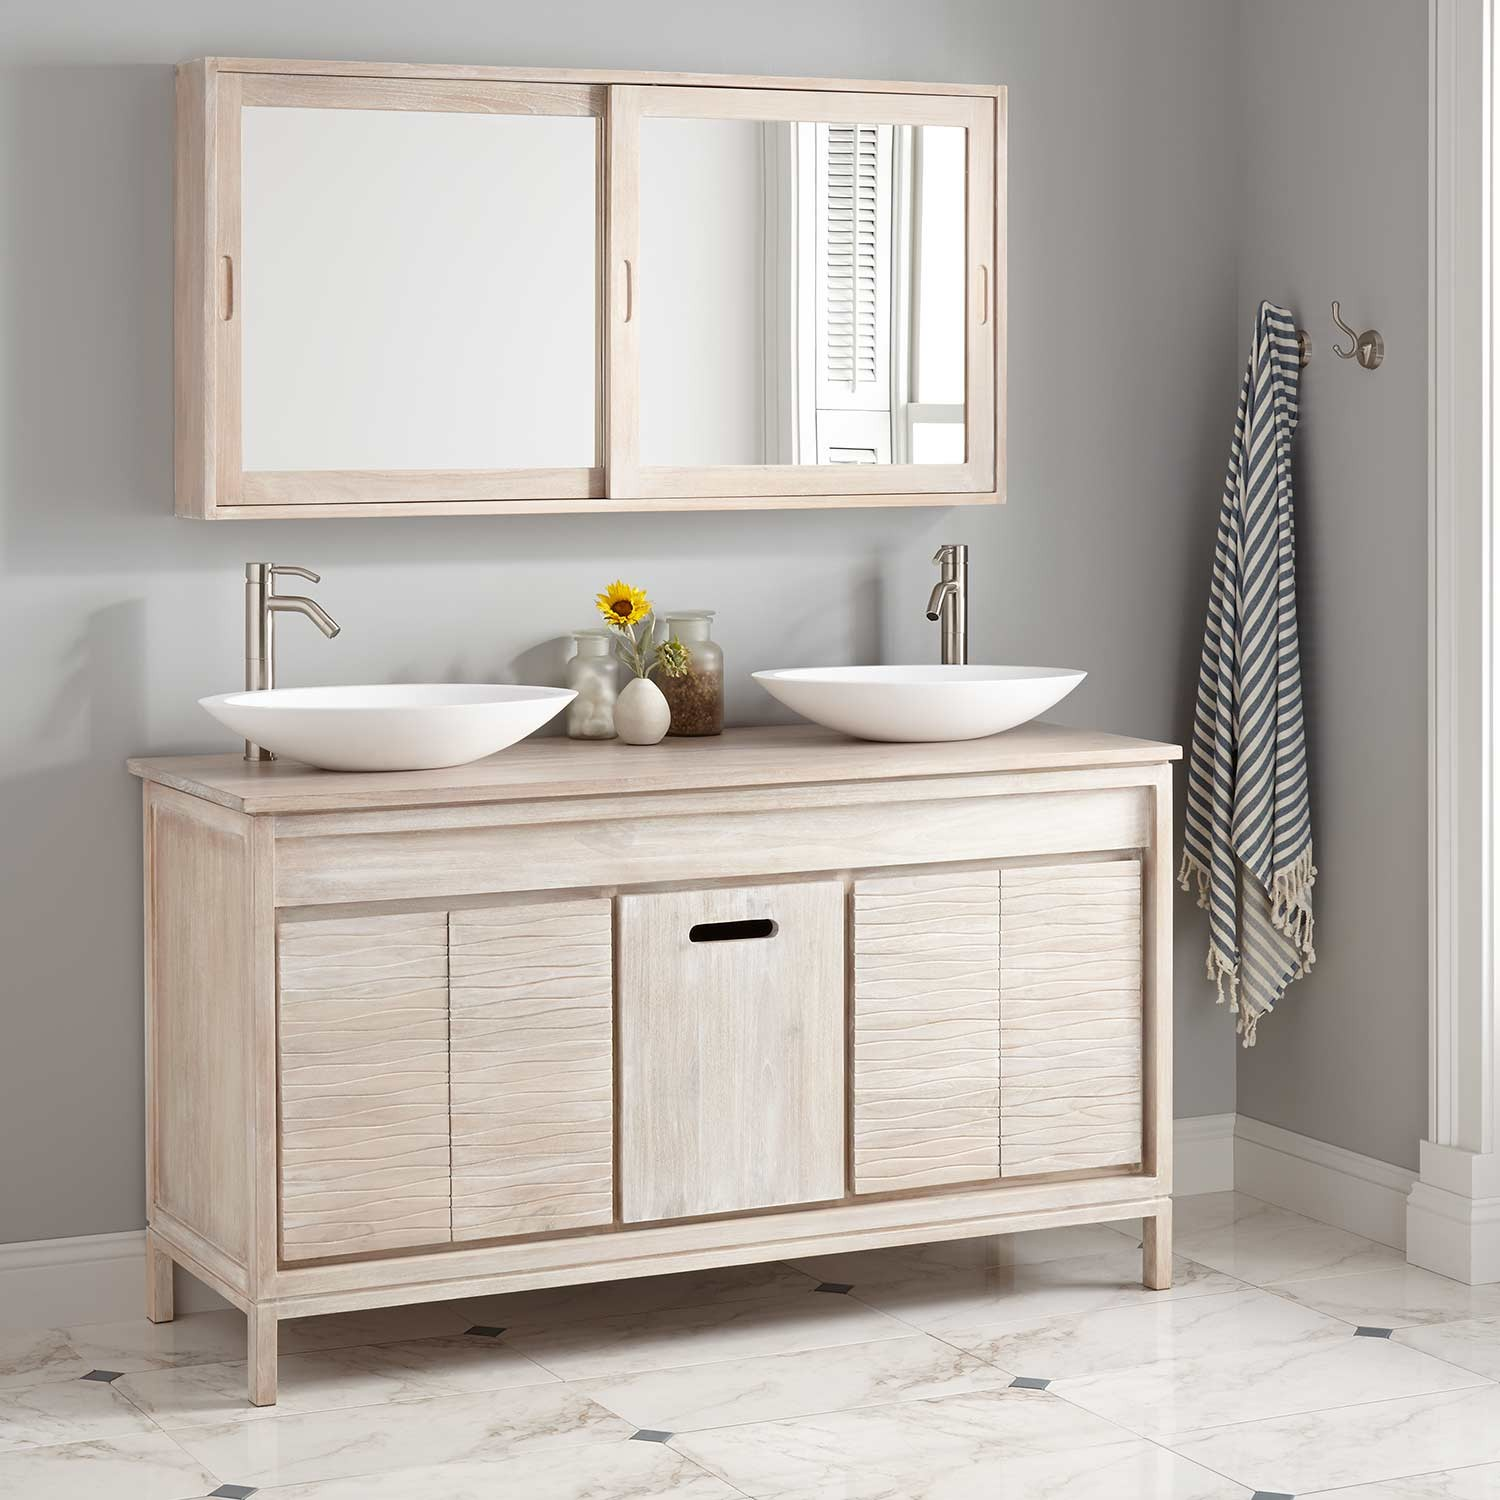 Image of: White Double Vanity